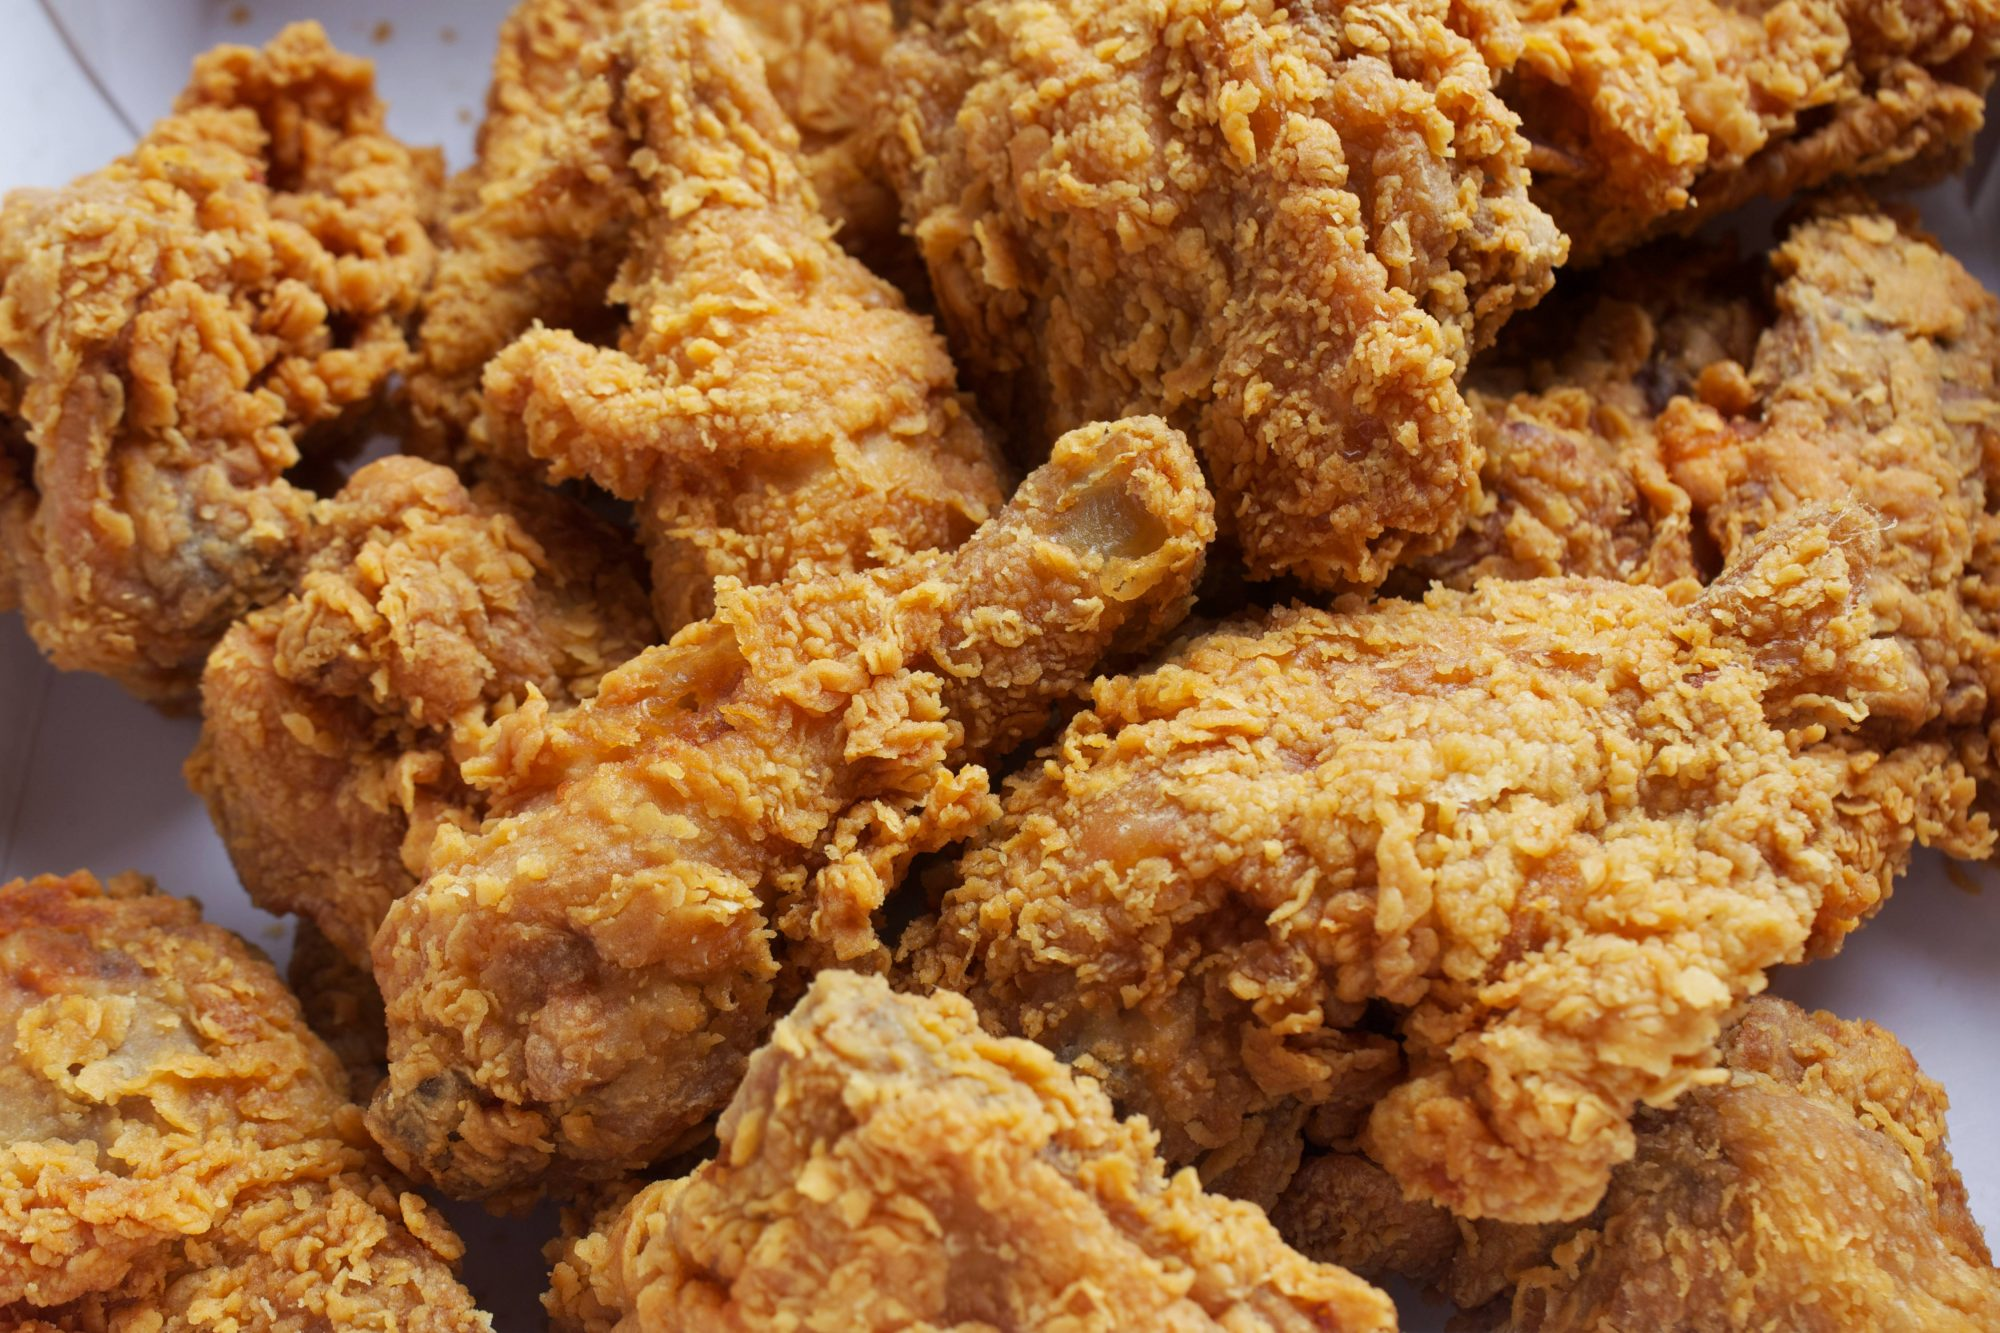 Almost a Half-Million Pounds of Prepared Chicken Is Recalled for Containing Metal Pieces